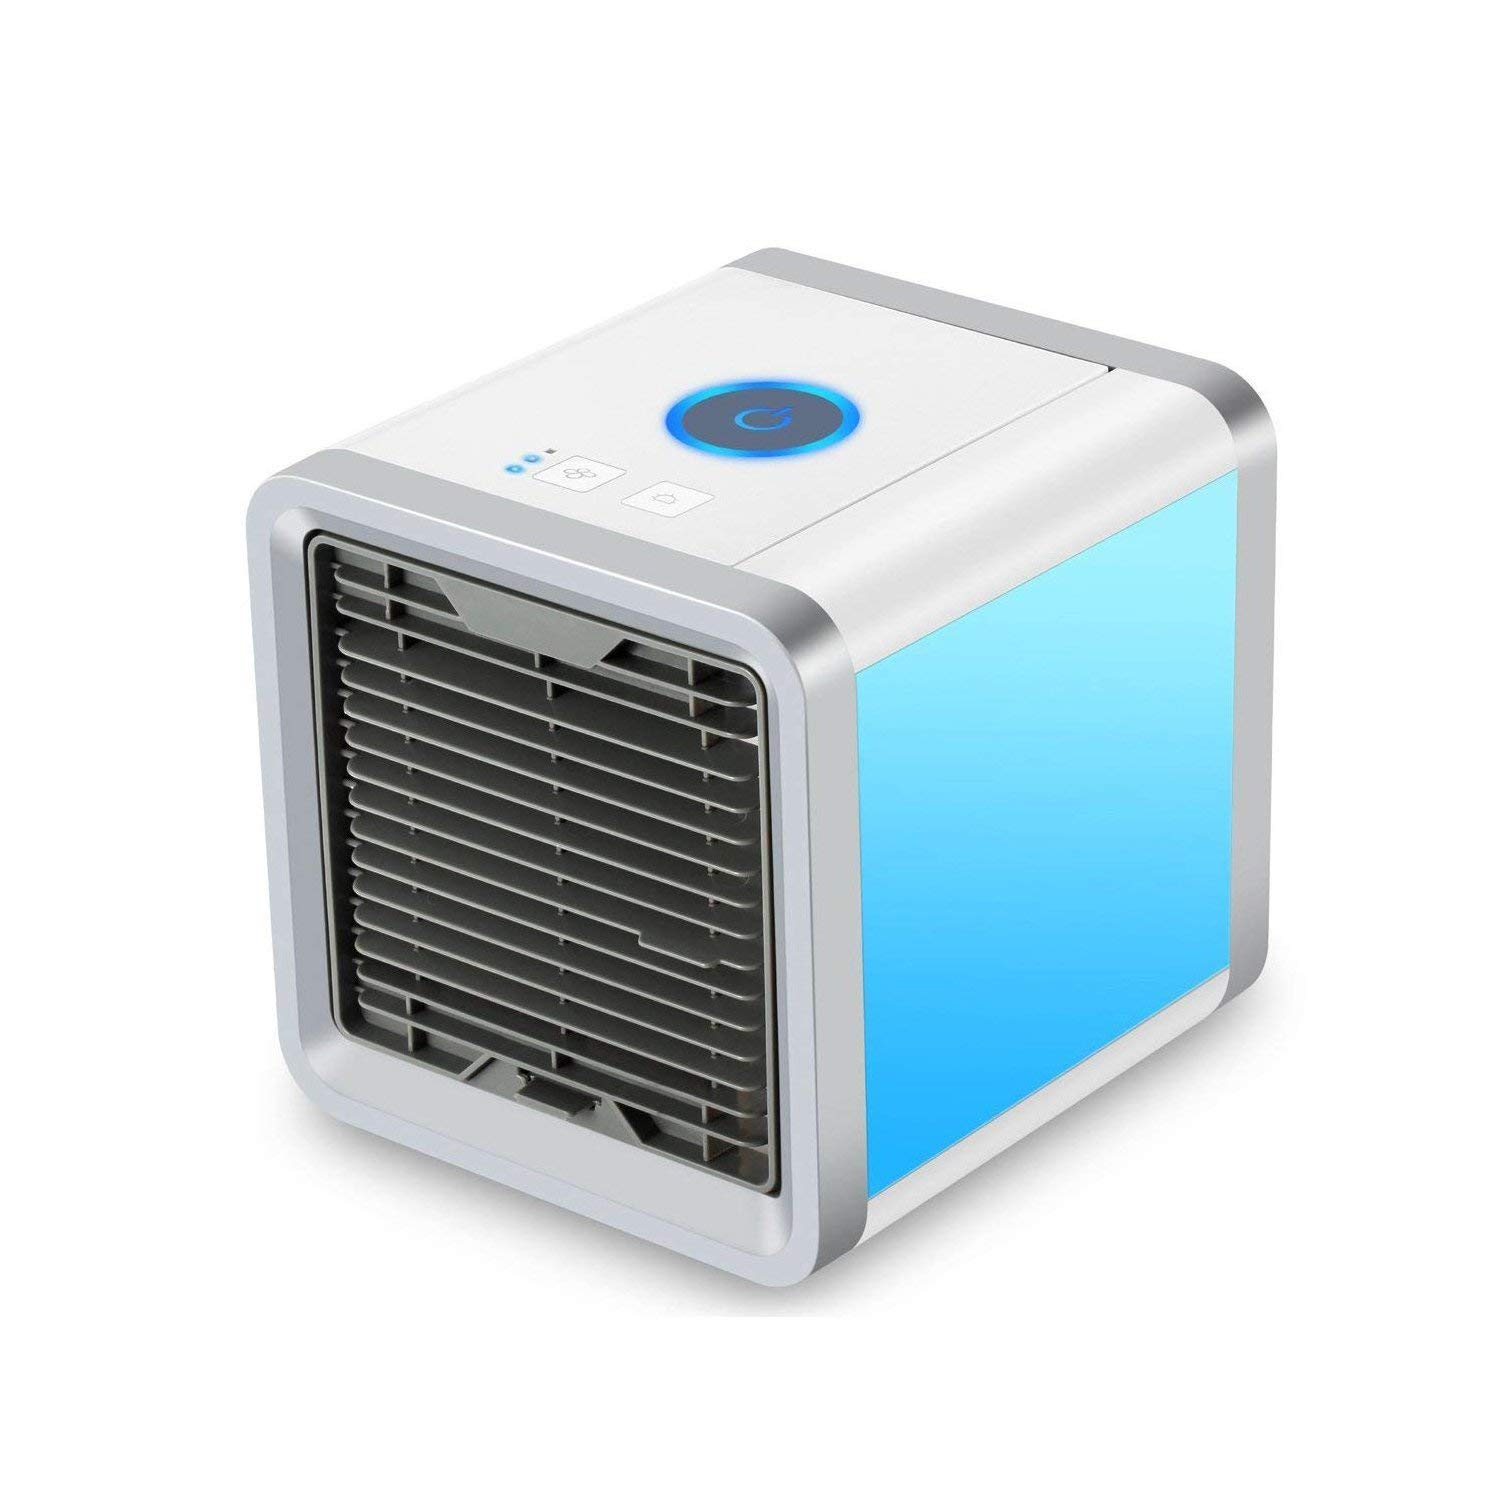 Auppy Air Cooler Portable Mini Personal Space Air Conditioner, Humidifier and Purifier with 7 Colors LED Lights for Room, Office, Outdoor (7 LED COLOR)